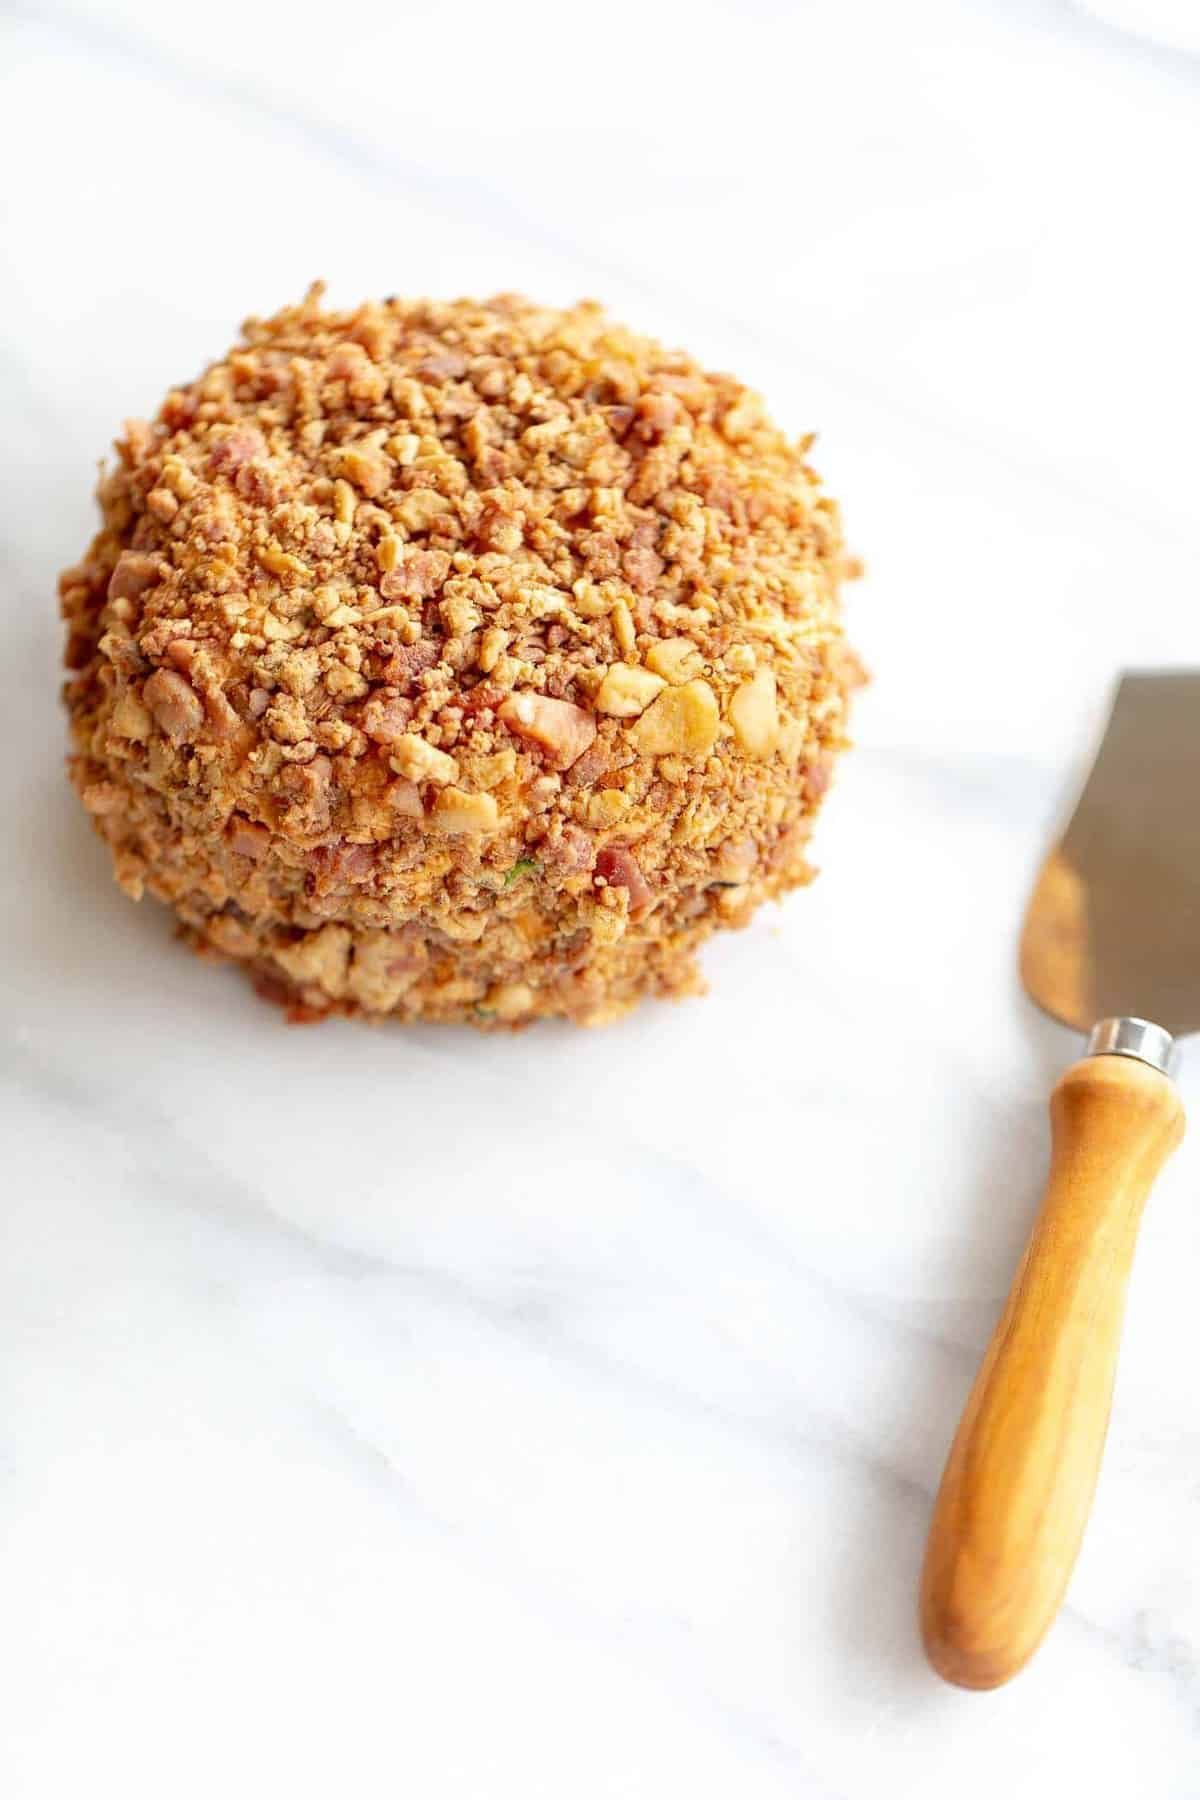 Marble counter top with a bacon covered cheese ball, serving utensil to the side.